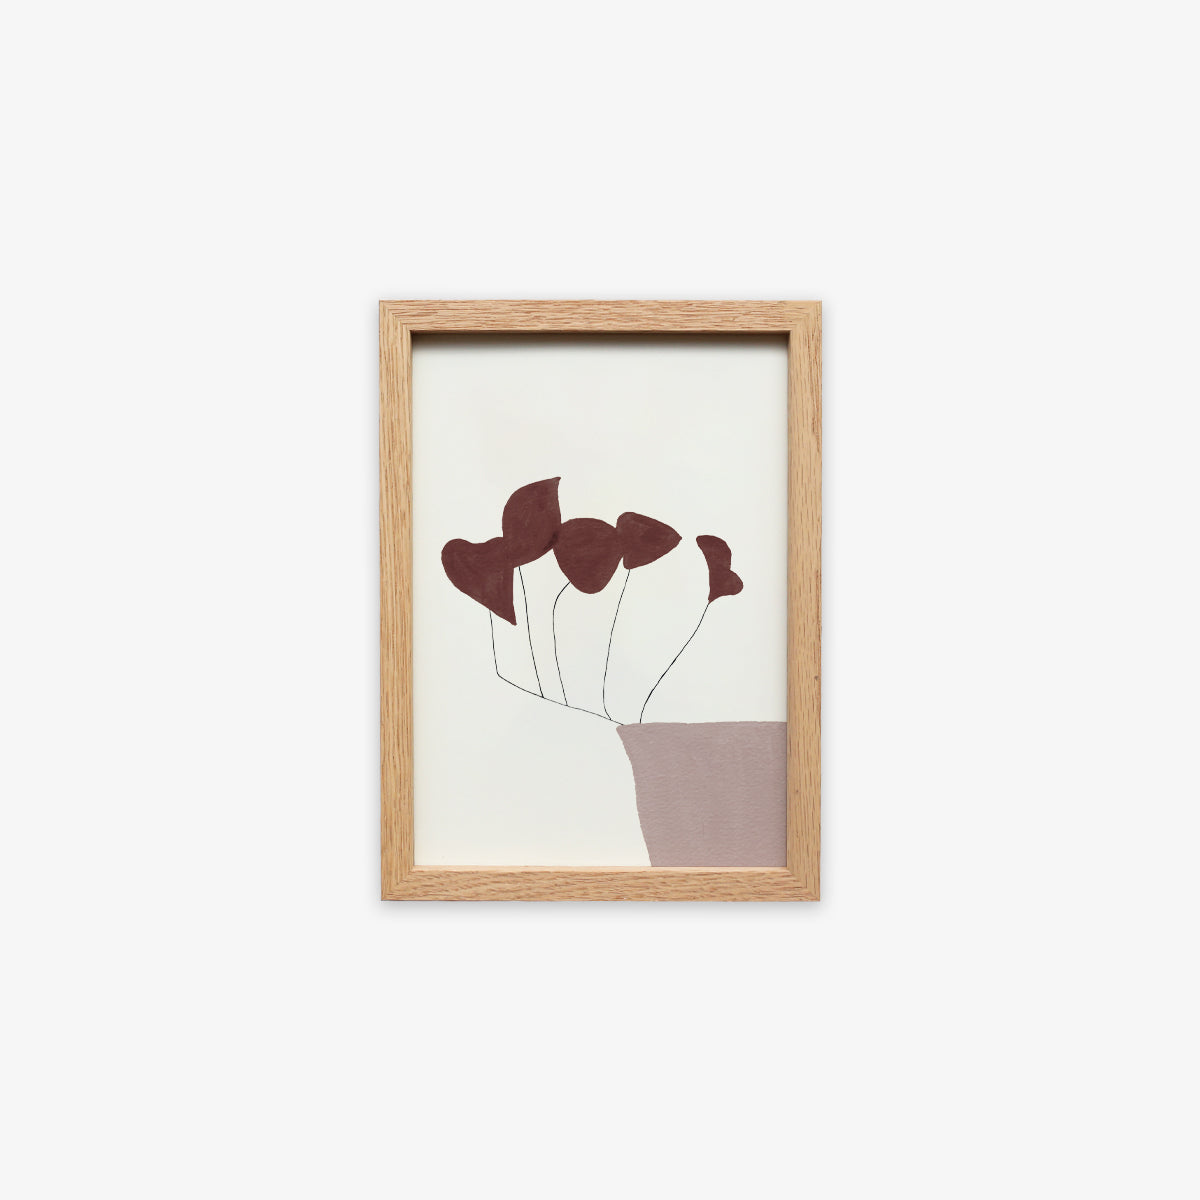 OAK WOOD FRAME + CARD A5 // CALM